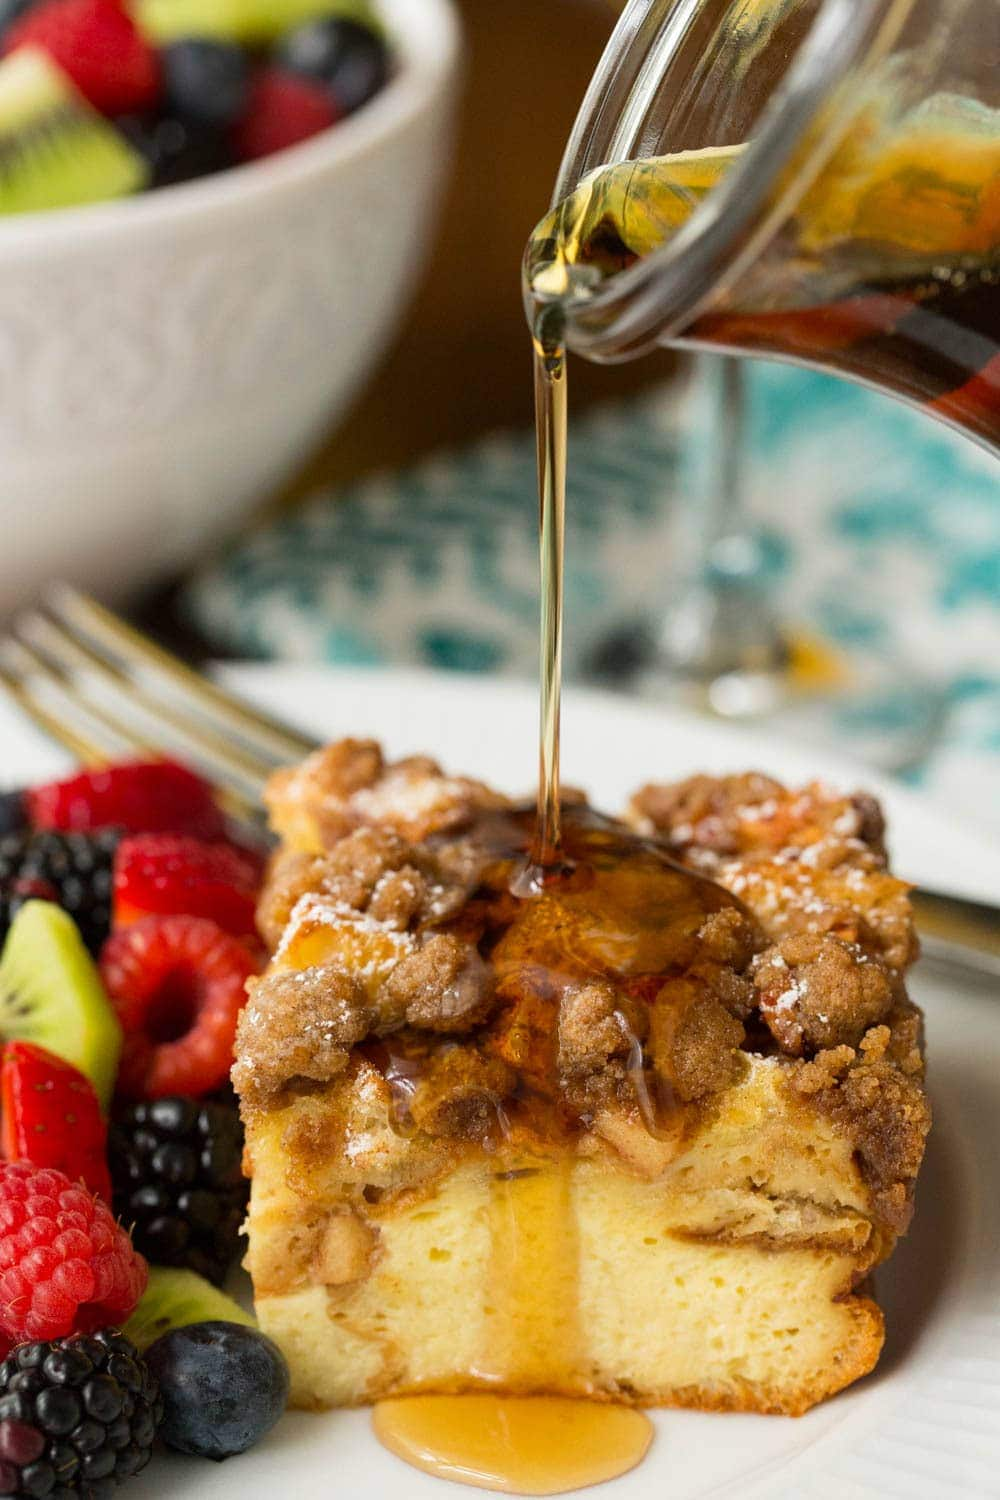 Vertical picture of overnight french toast cut into a square with fresh fruit with syrup poured on top